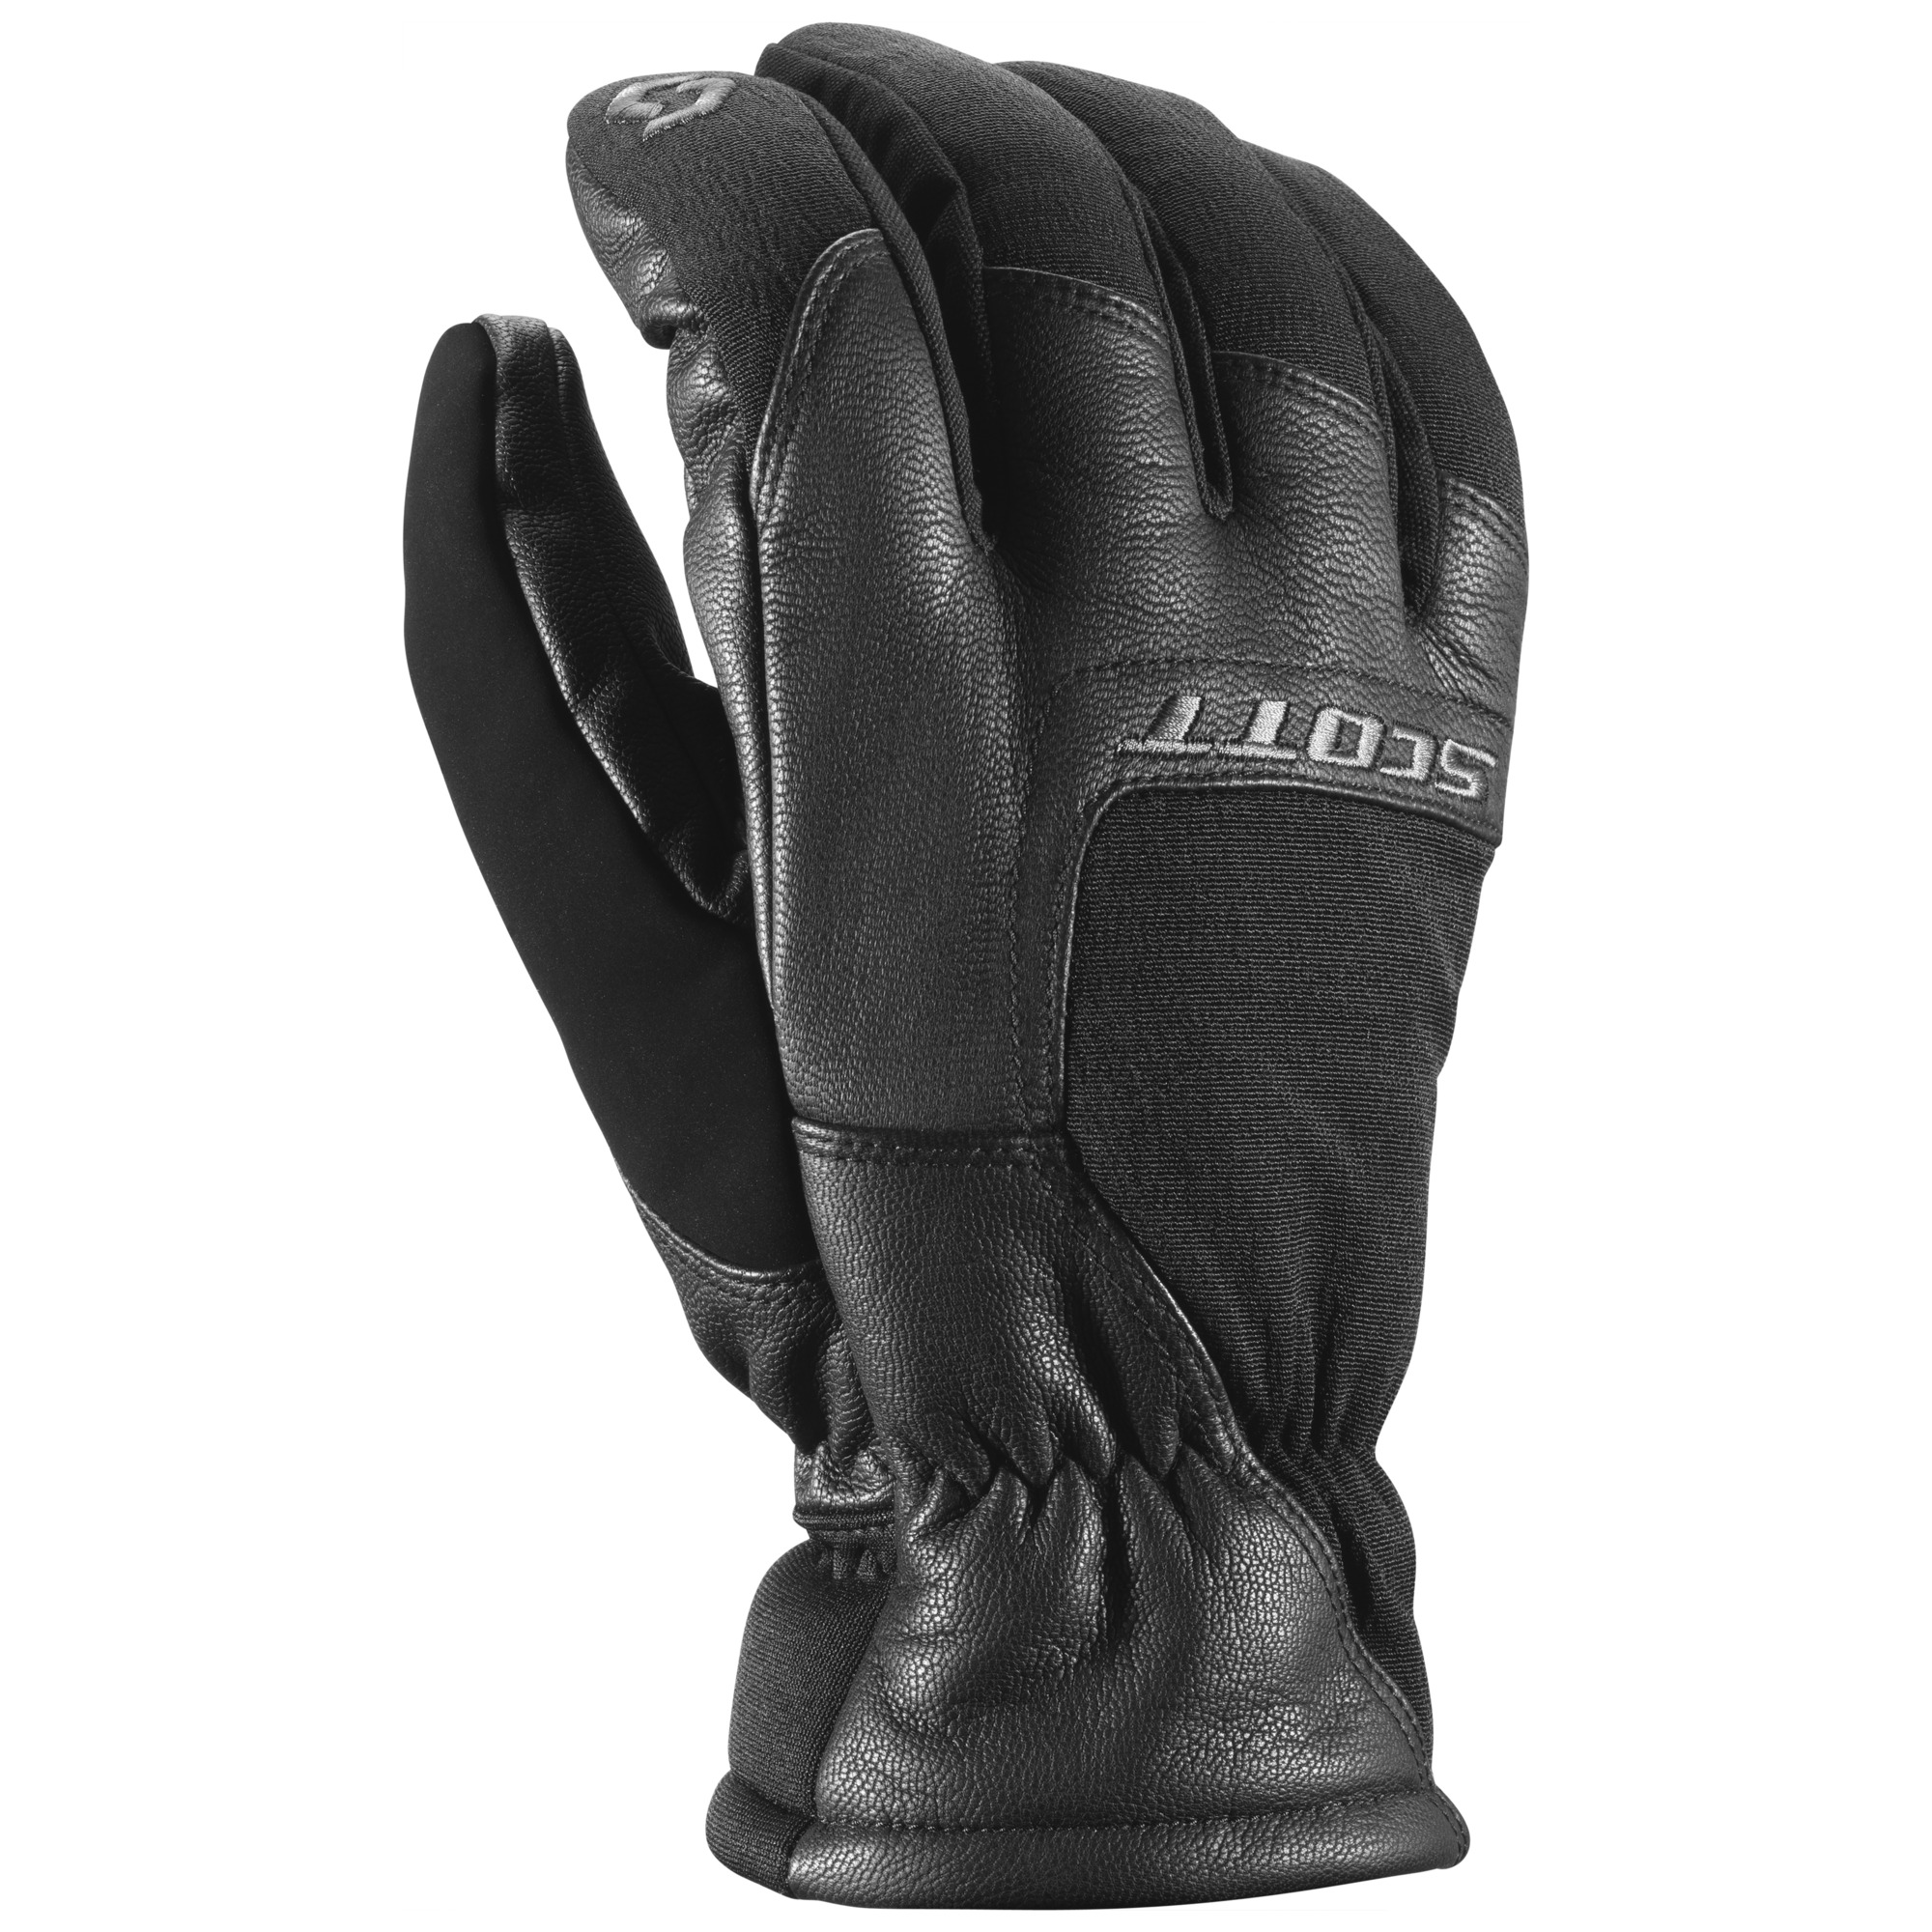 SCOTT Vertic Grip GTX Glove